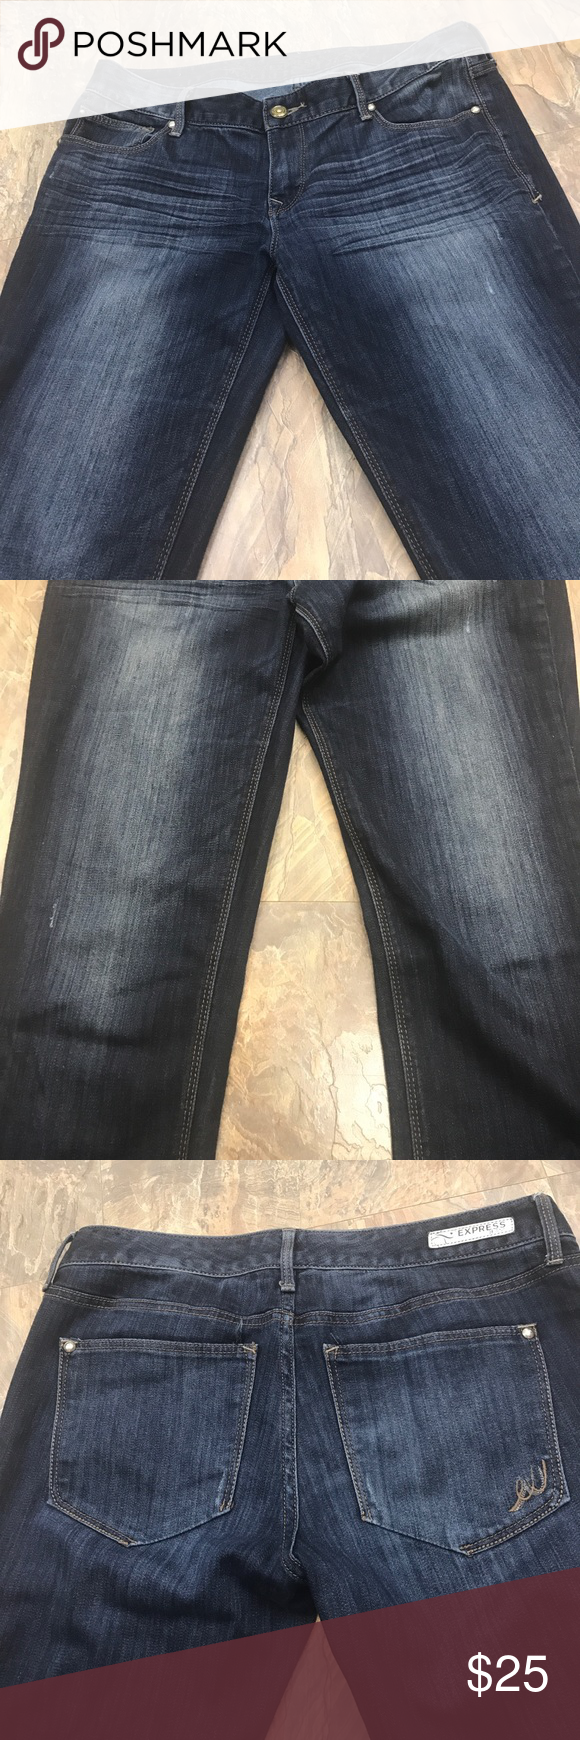 Express dark wash skinny Stella denim jeans Gently preowned with normal wear. No holes or stains. Whiskered dark wash front. Cotton polyester spandex blend denim. Lay flat waist dimension is 17 1/2 inches. Rise is 8 inches. inseam is 32 inches. Express Jeans Skinny